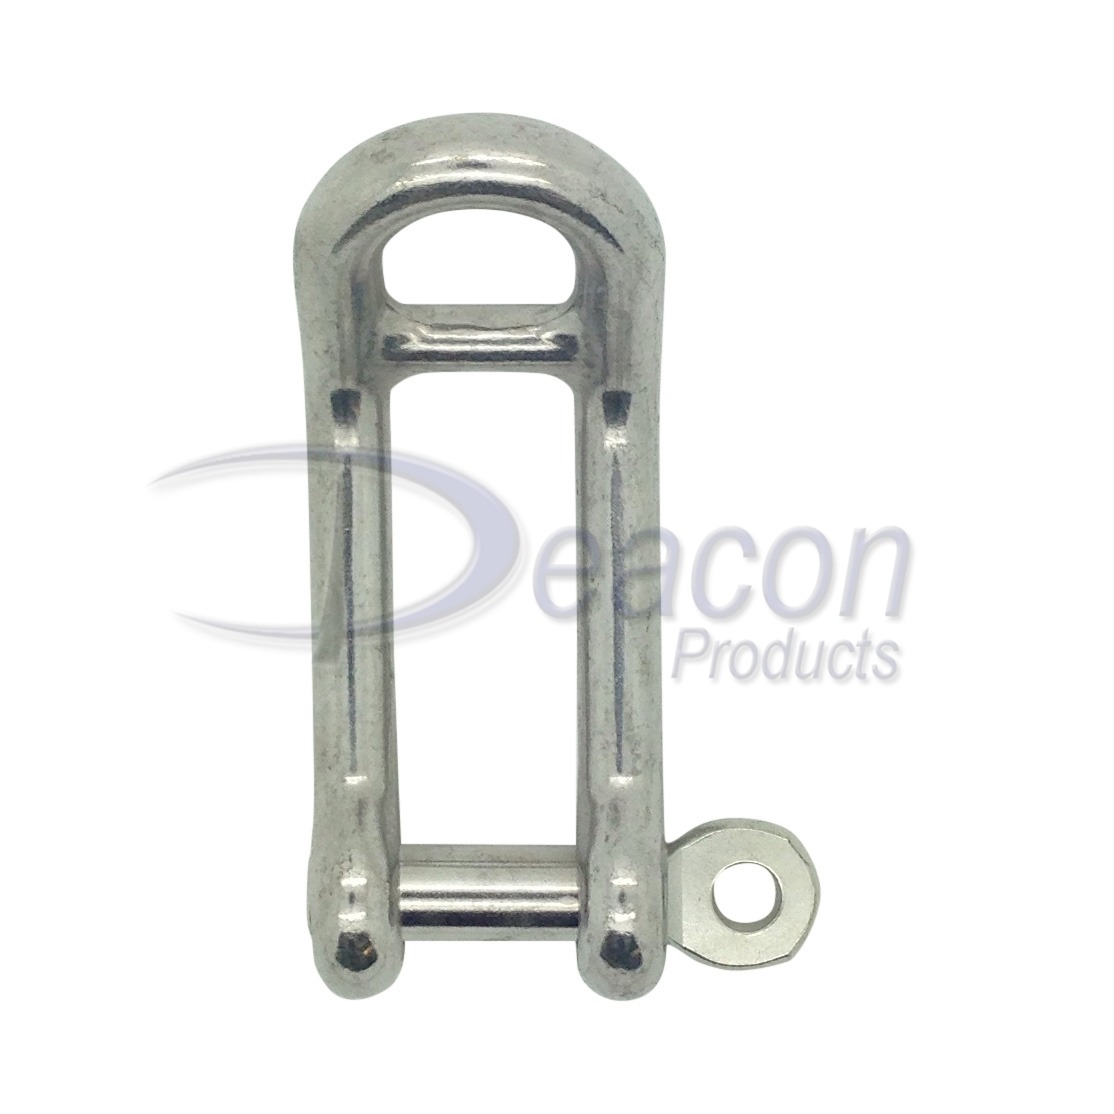 stainless-steel-double-bar-dee-shackle-with-captive-pin